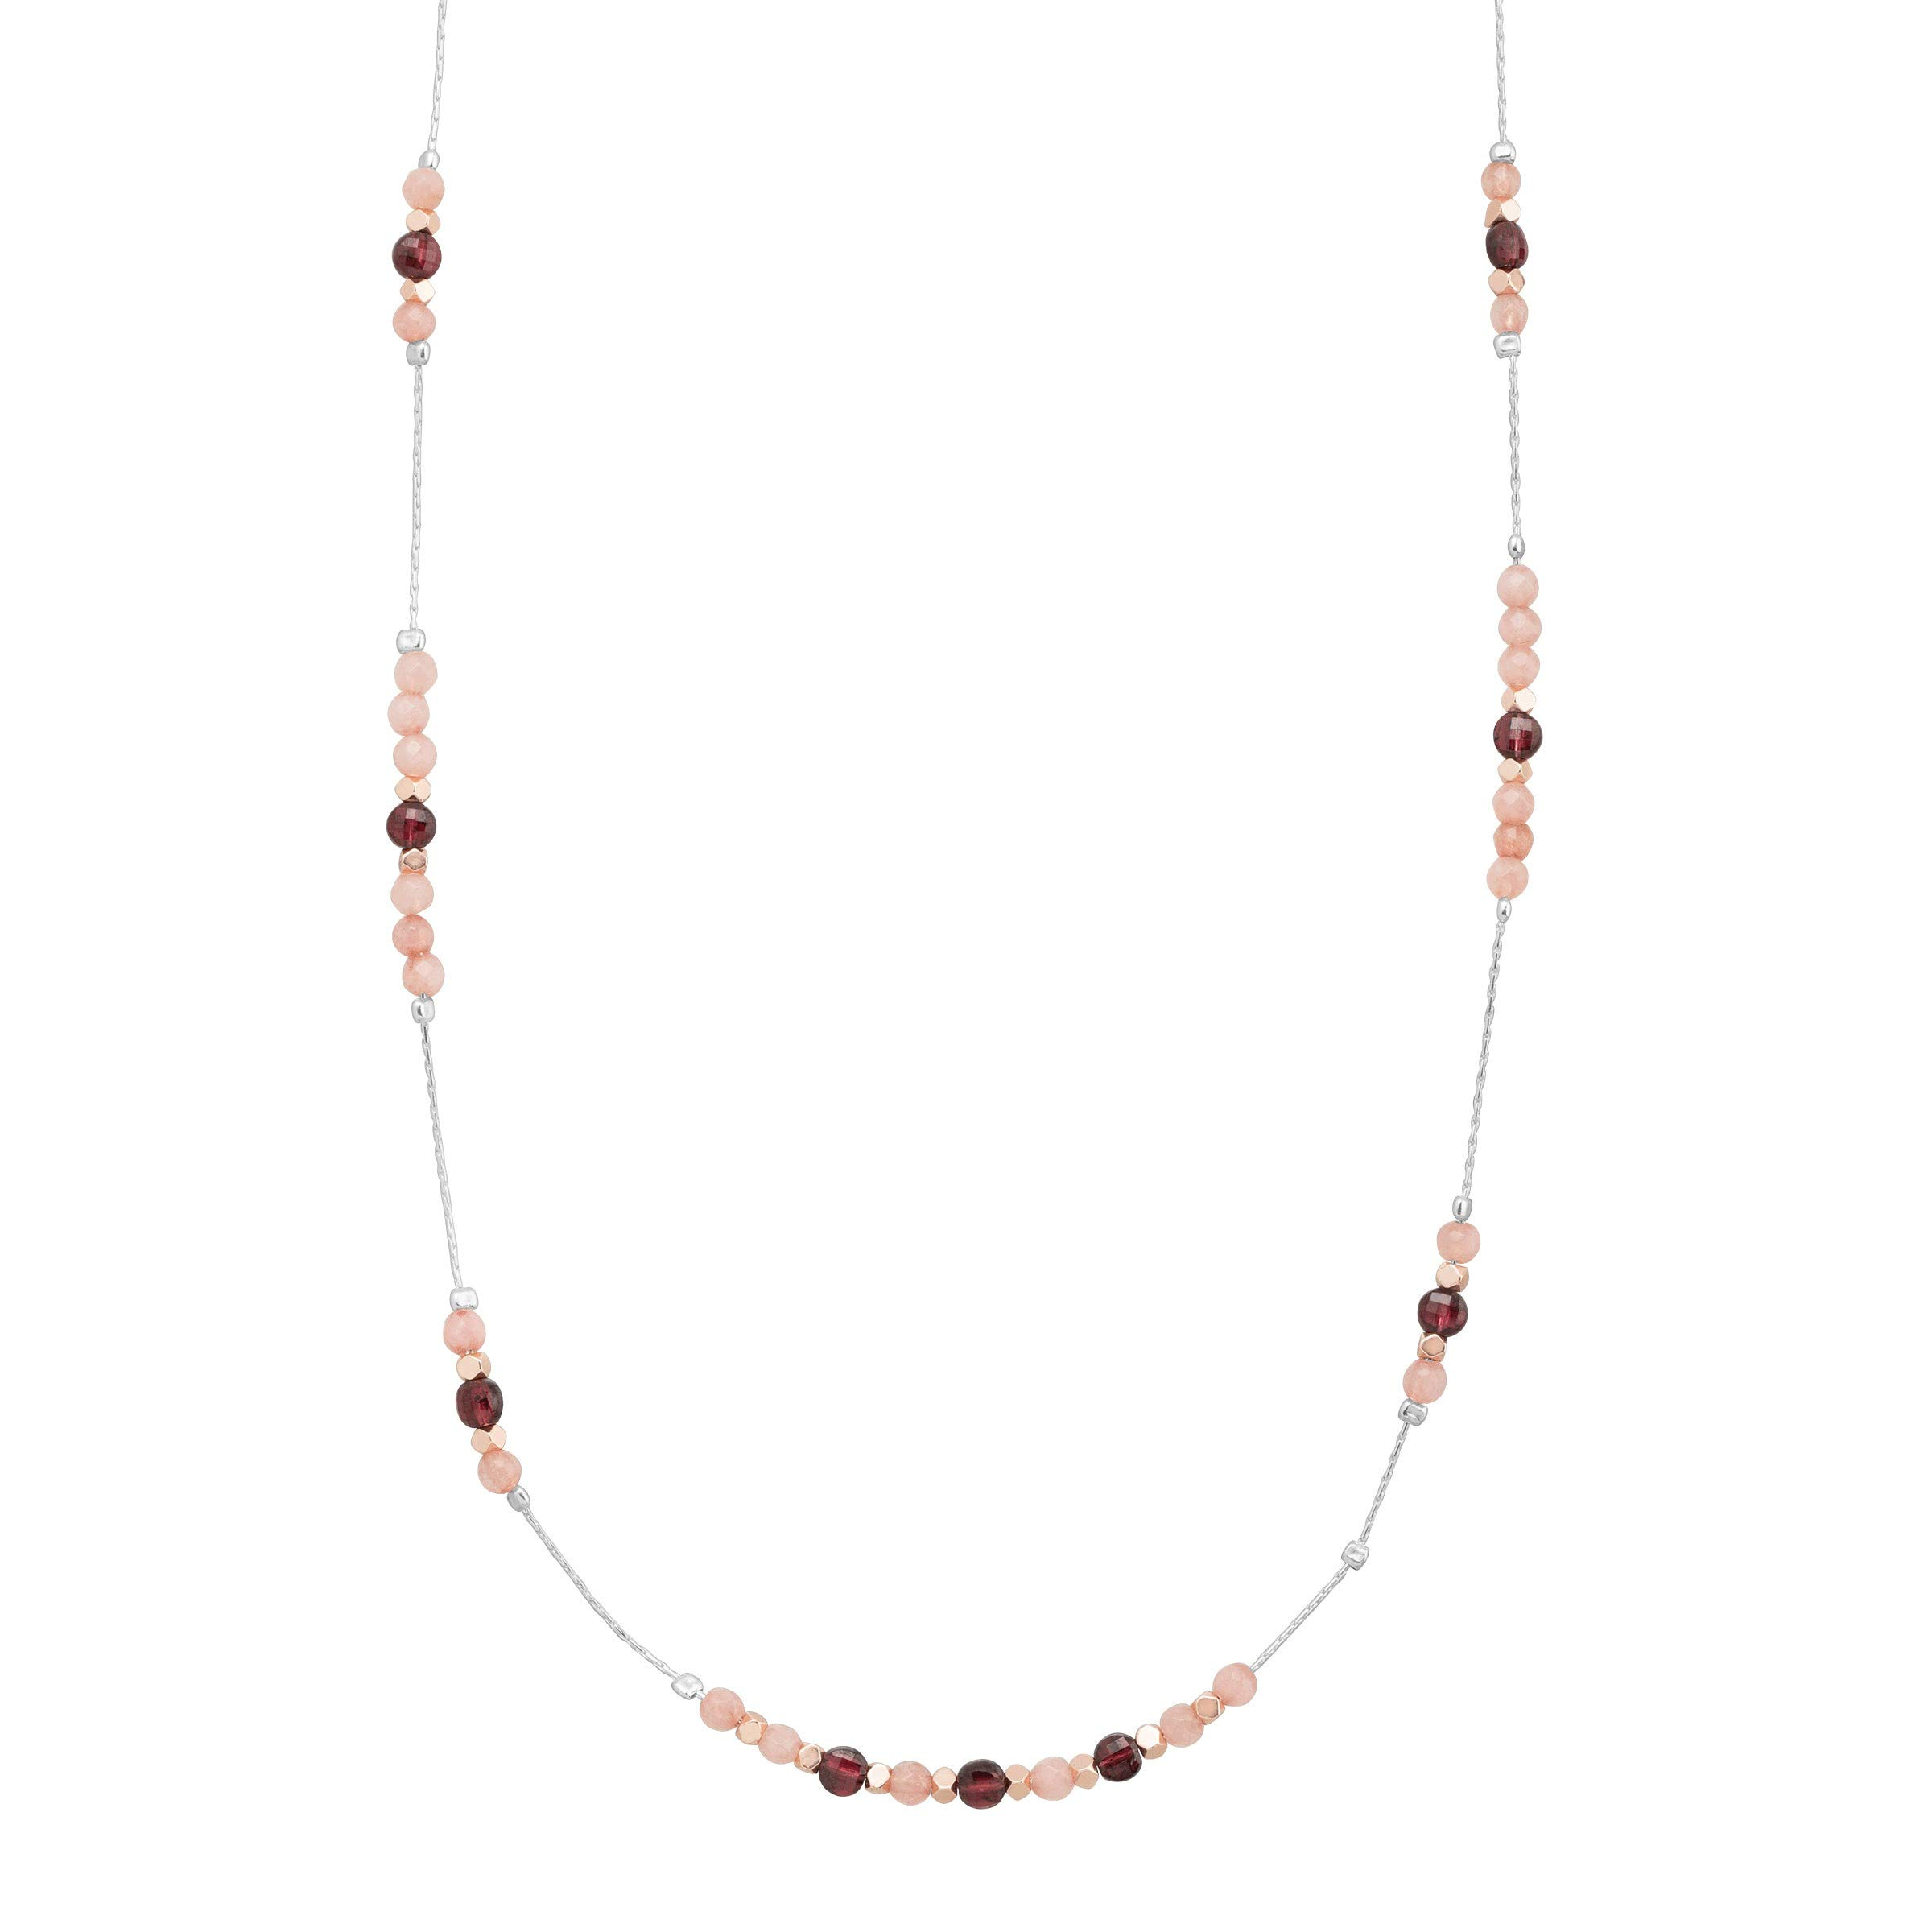 Silpada 'Rock This Way' 13 5/8 ct Natural Pink Jade, Garnet, Hematite Beaded Necklace in Sterling Silver